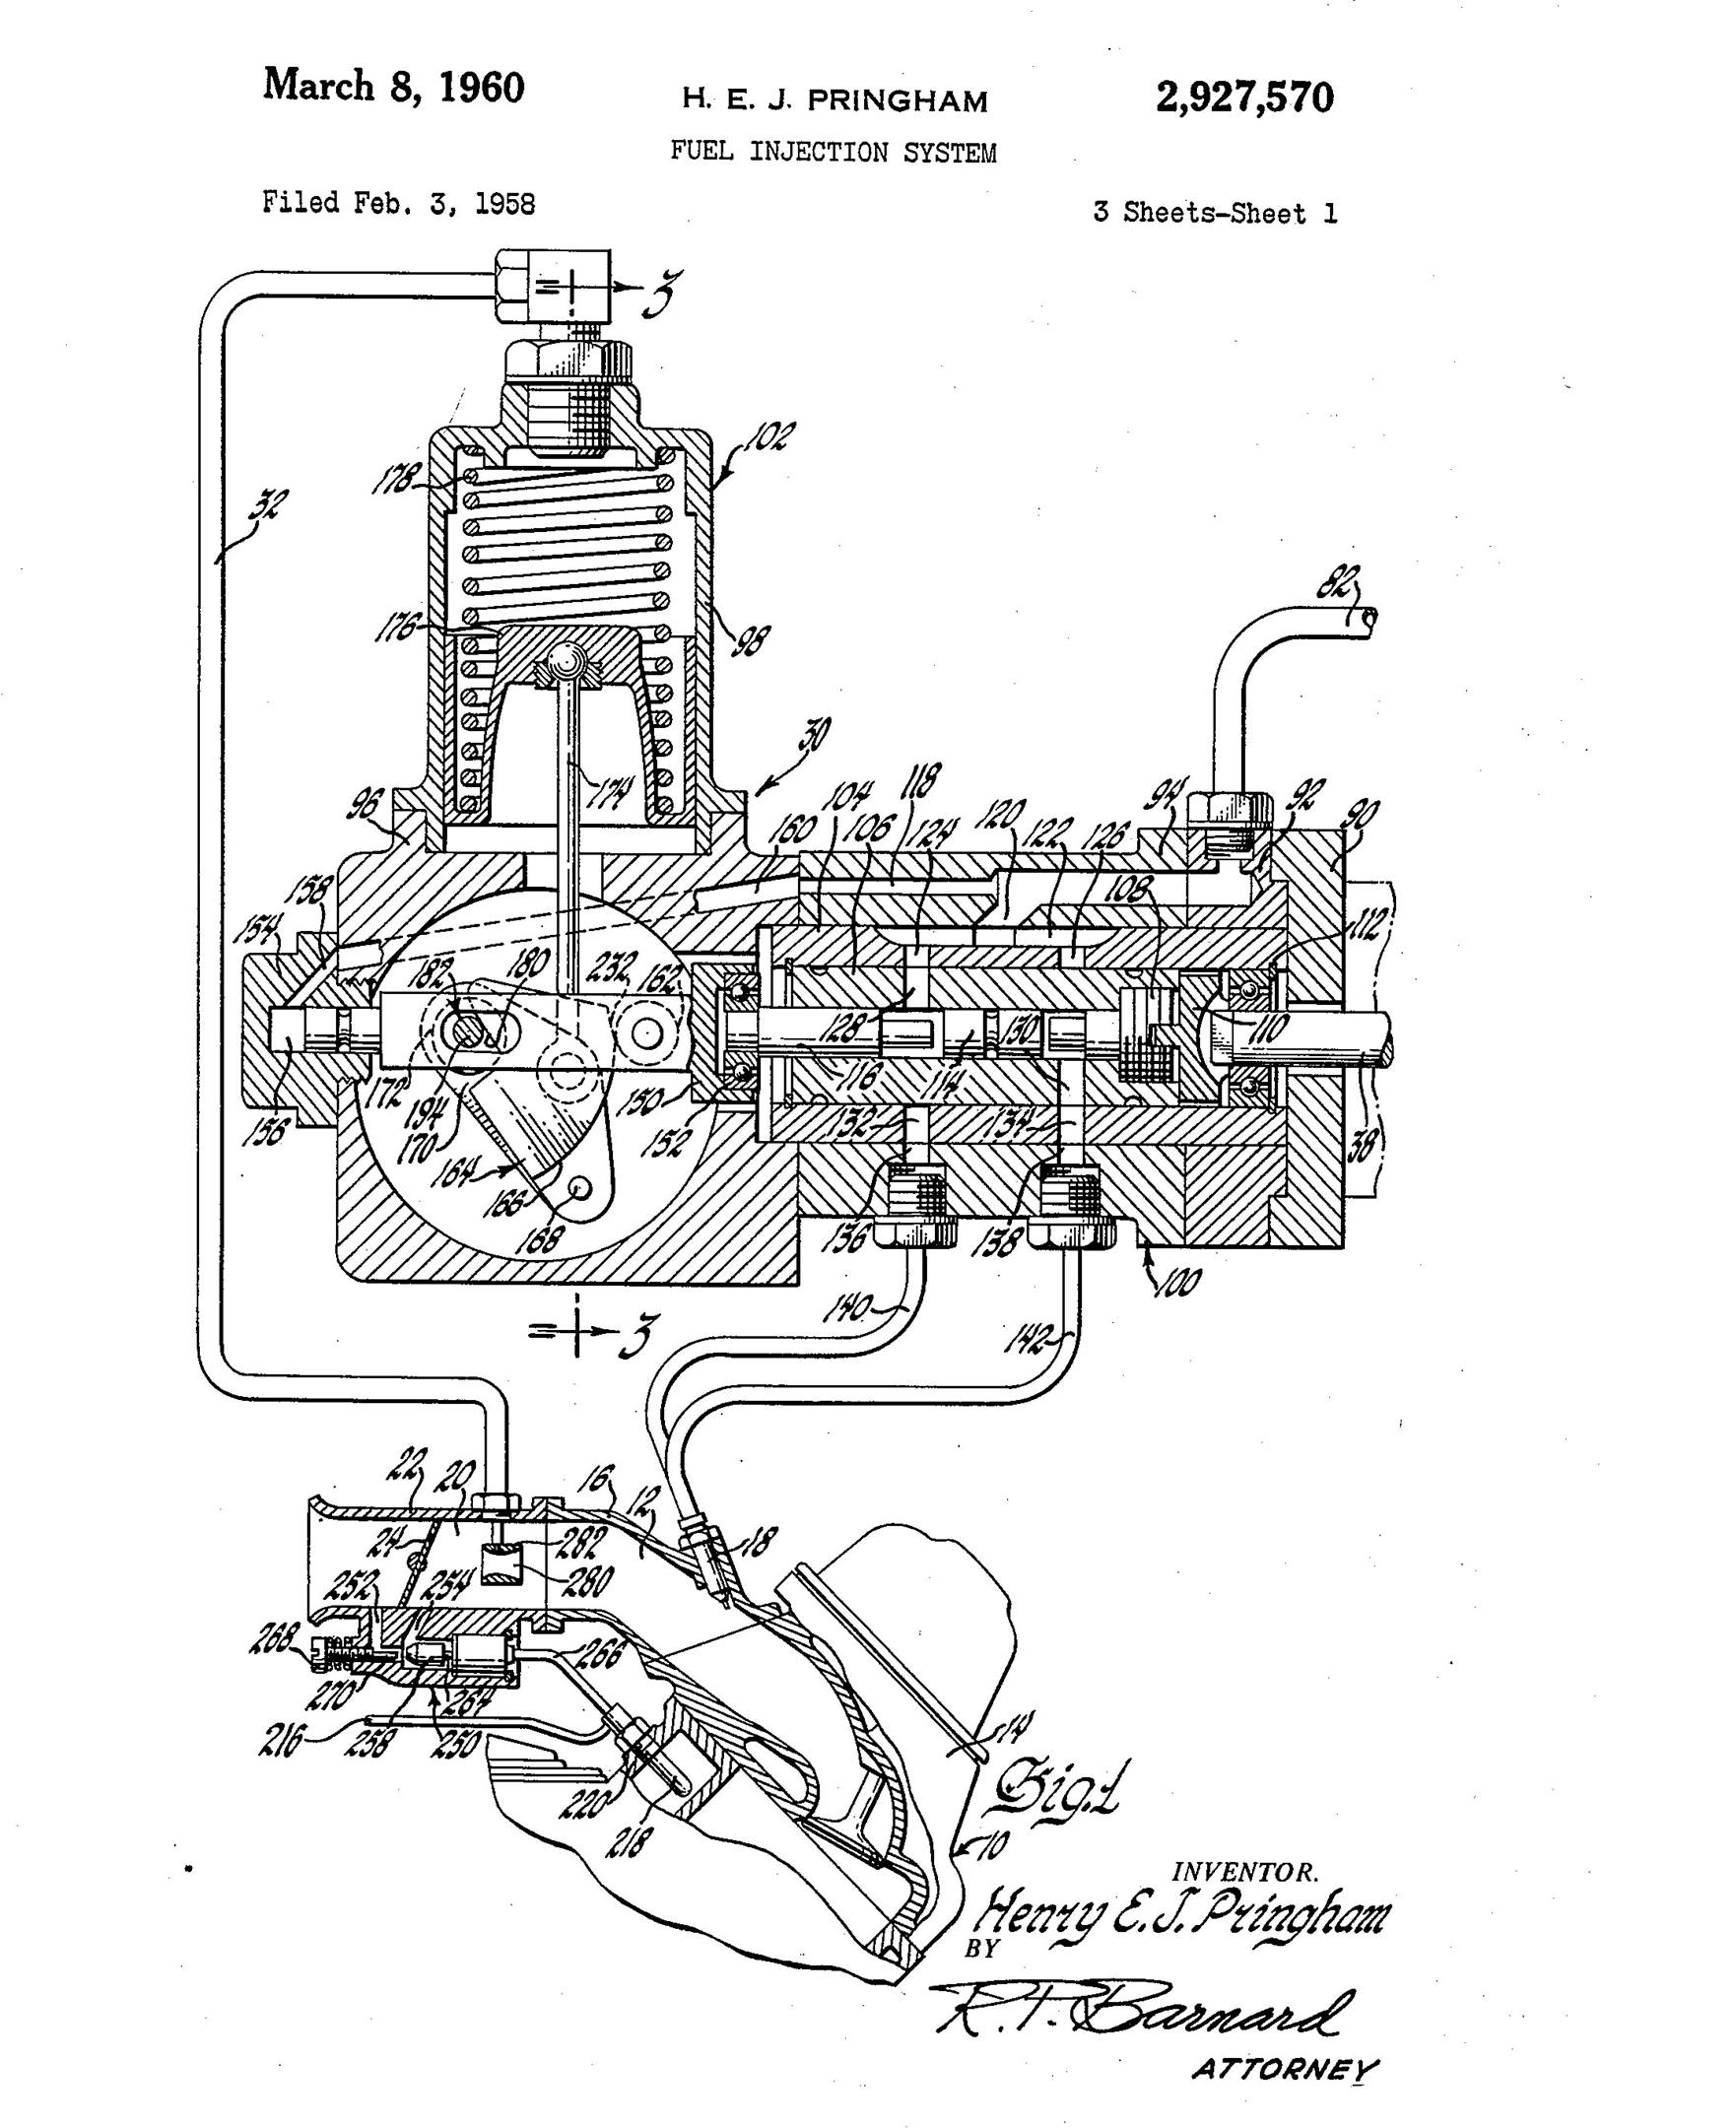 A patent drawing from Pringham's injection prototype